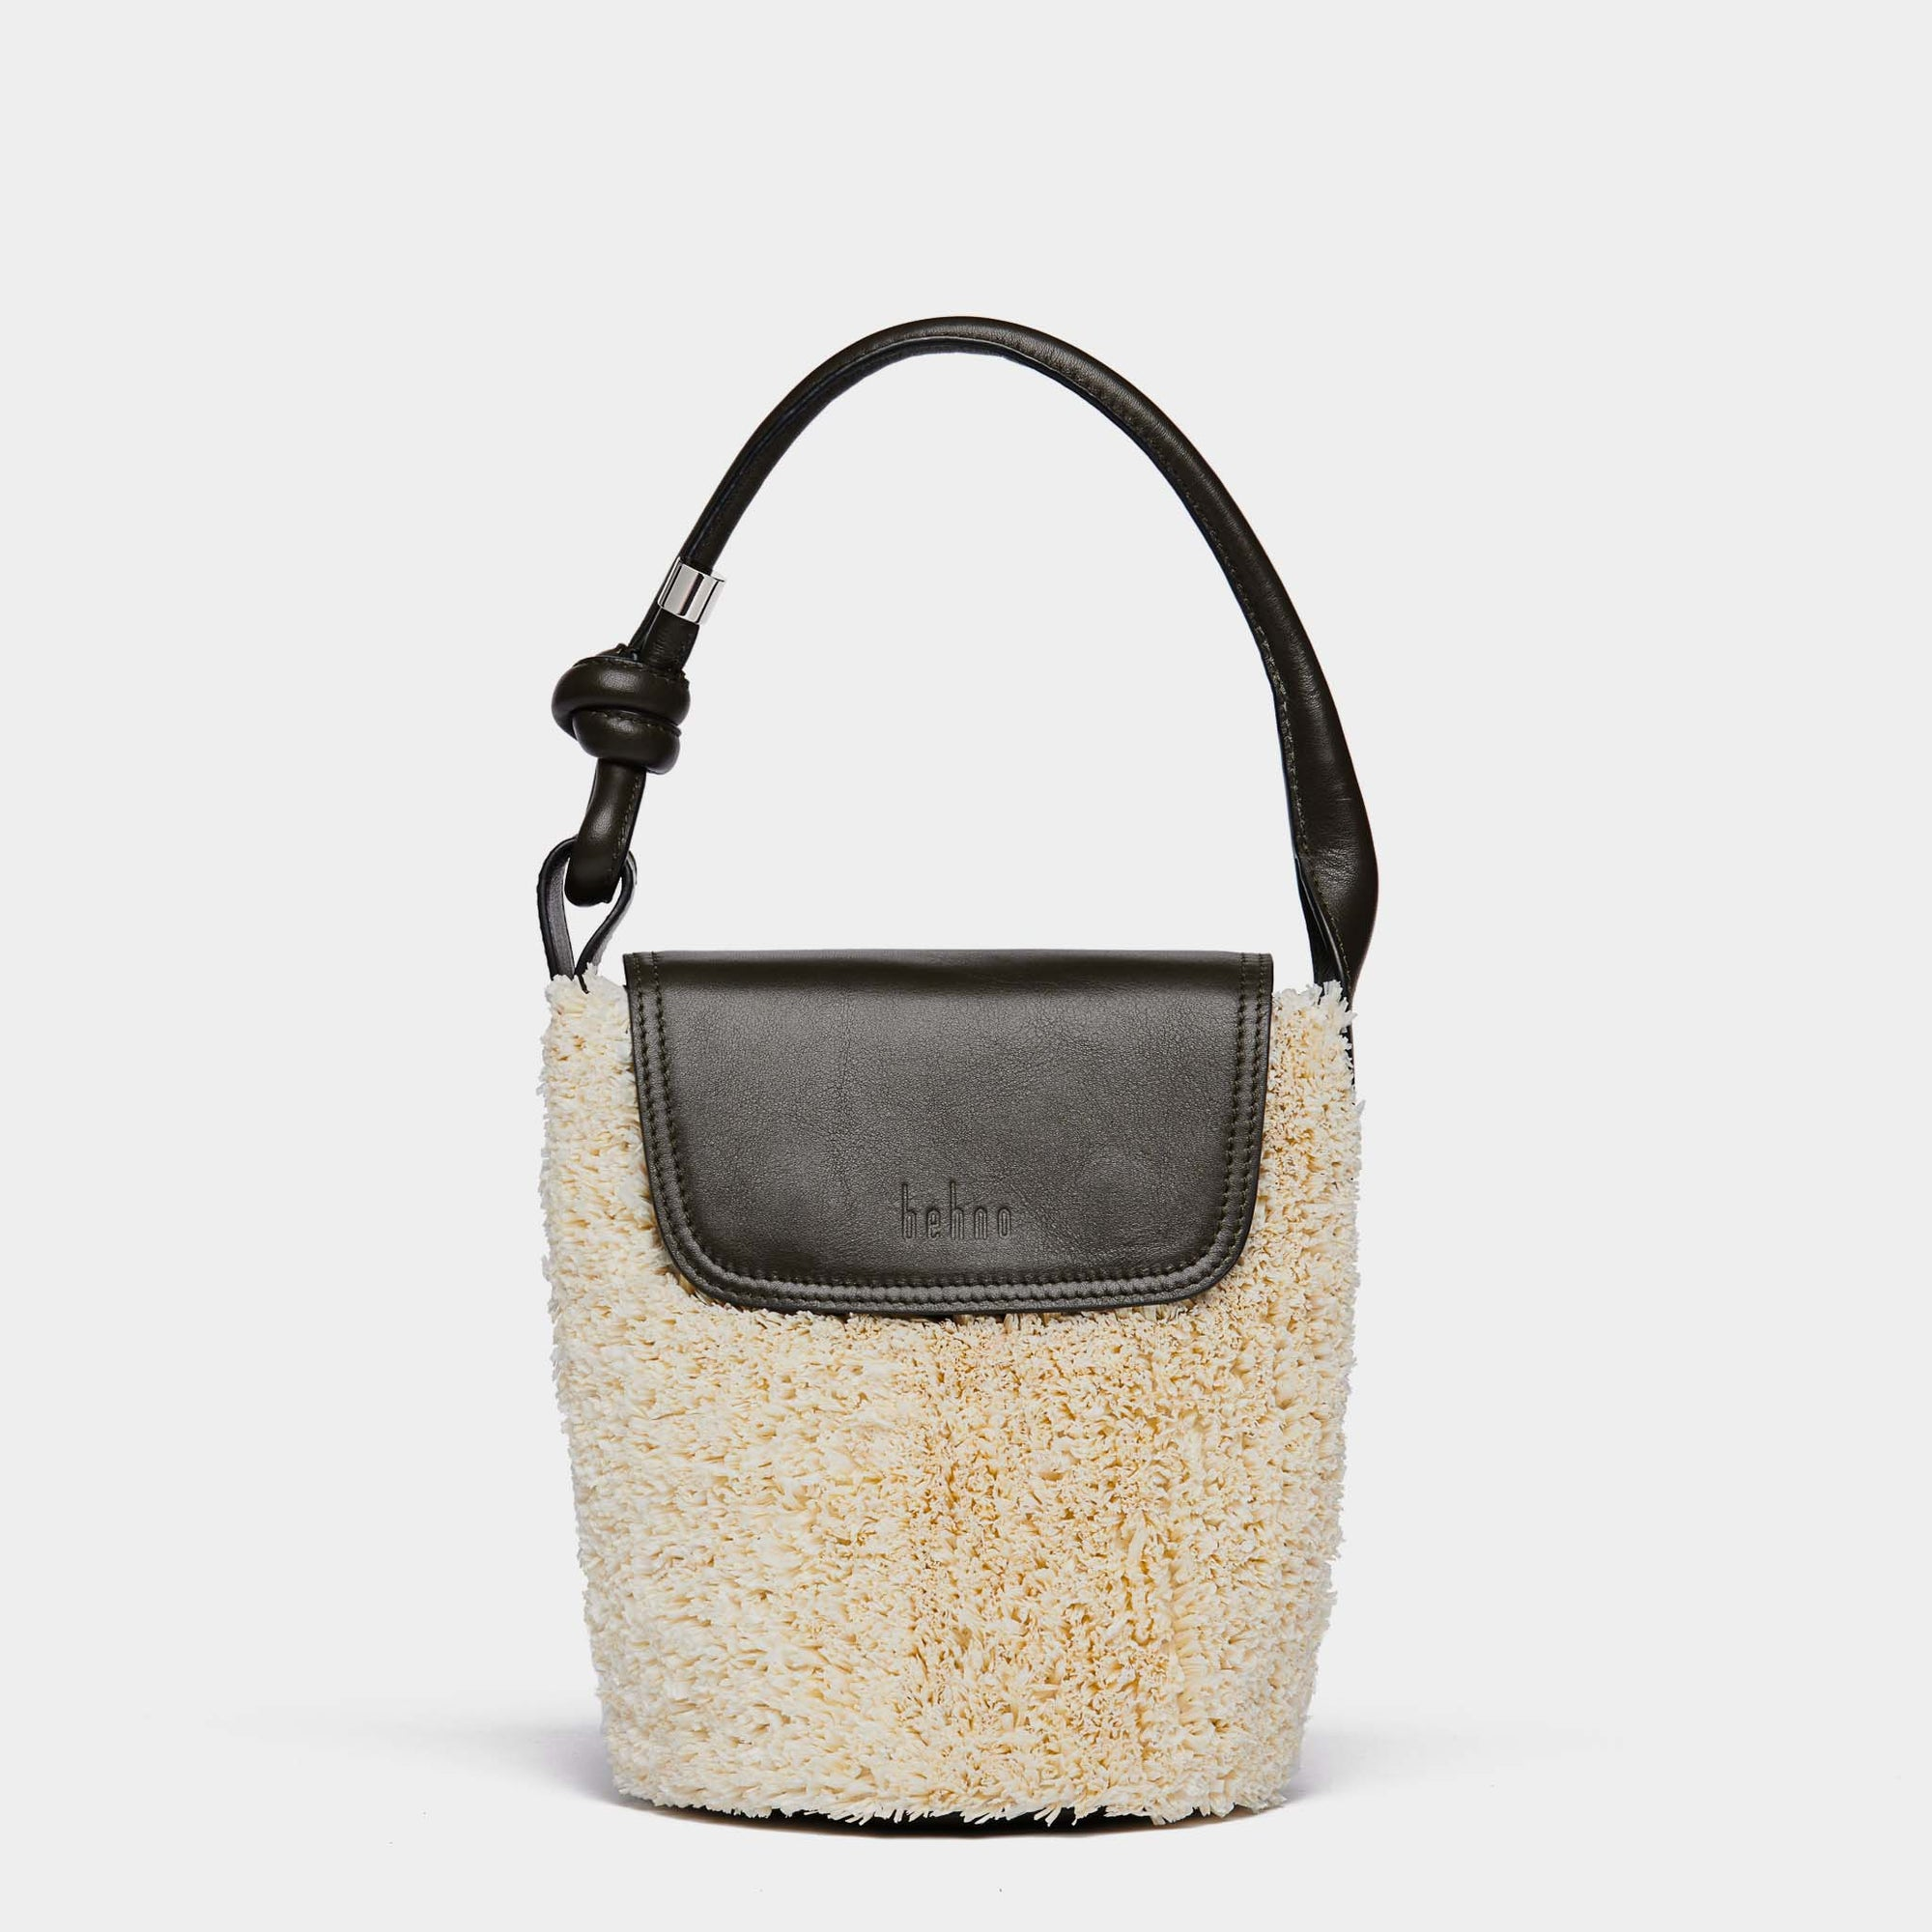 HELEN MINI BUCKET BAG RAFFIA OLIVE